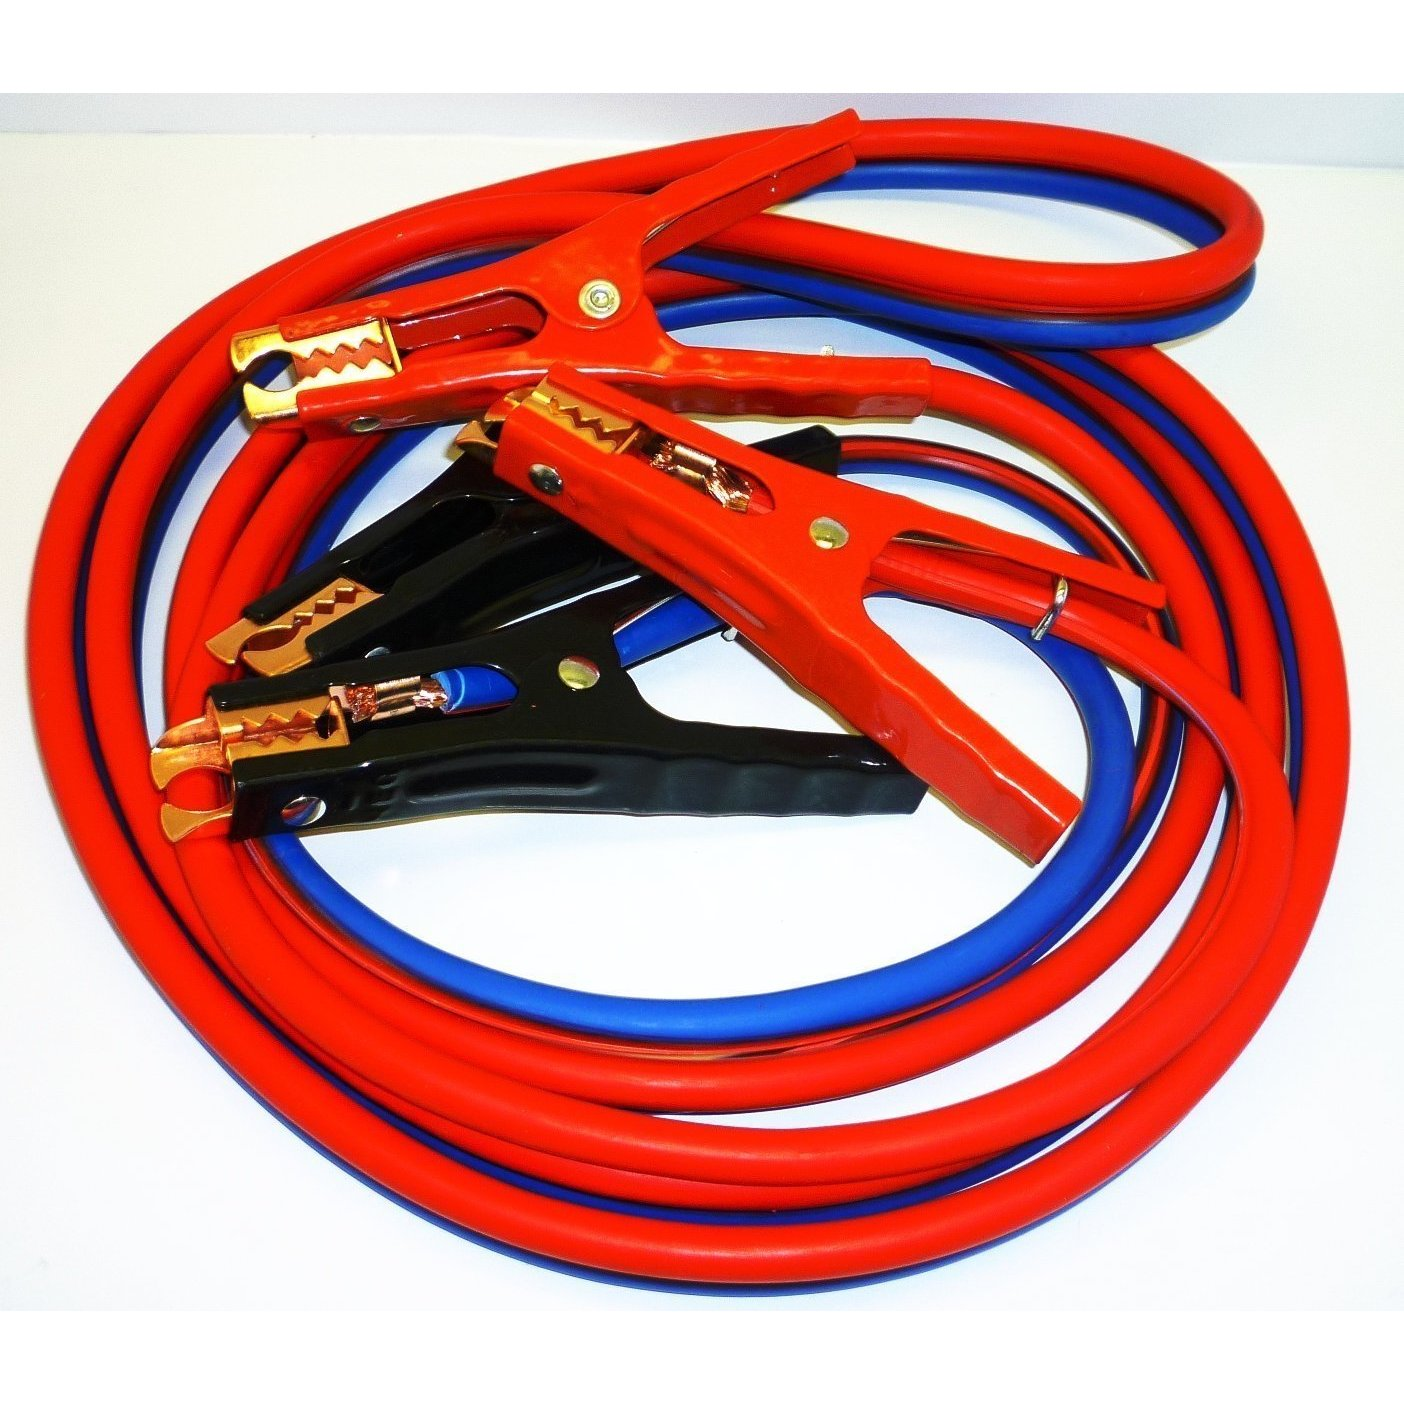 12-foot Premium Heavy-duty No-tangle 500-amp 6-gauge Jump...